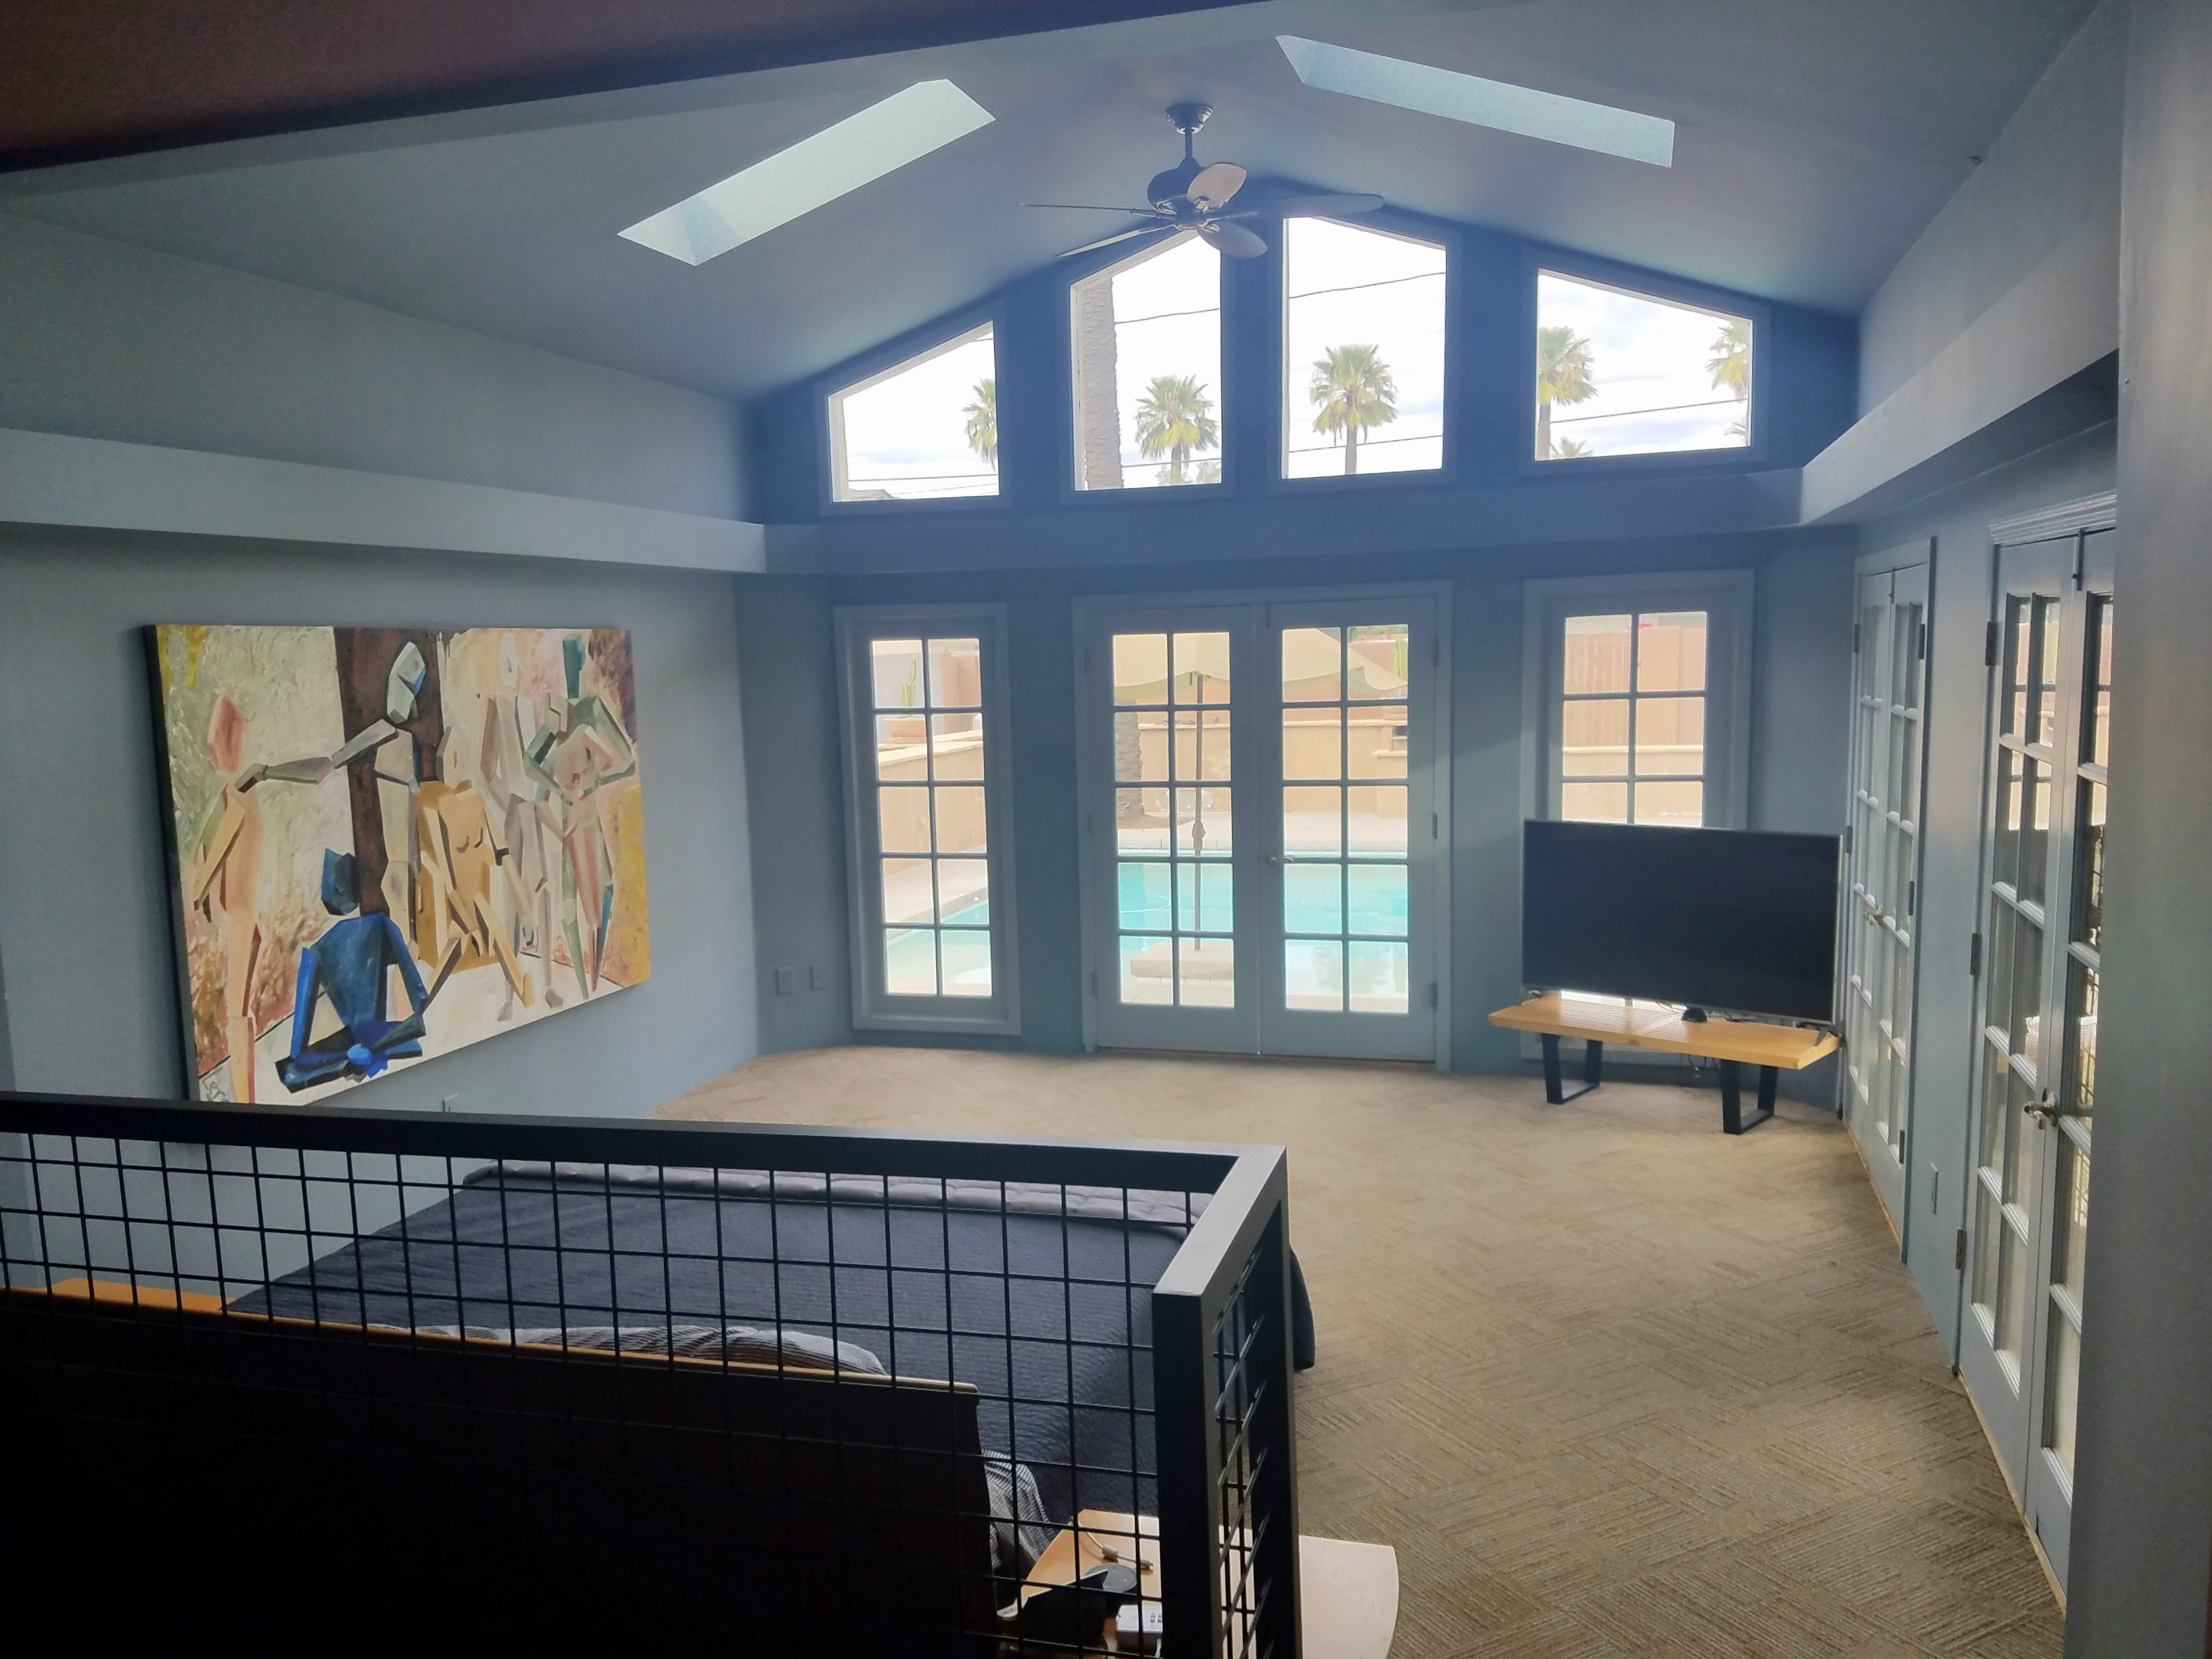 The master bedroom, tucked beyond the master bath, is actually recessed from an elevated, open closet space, and looks out to the home's backyard pool area thanks to French doors on two walls.